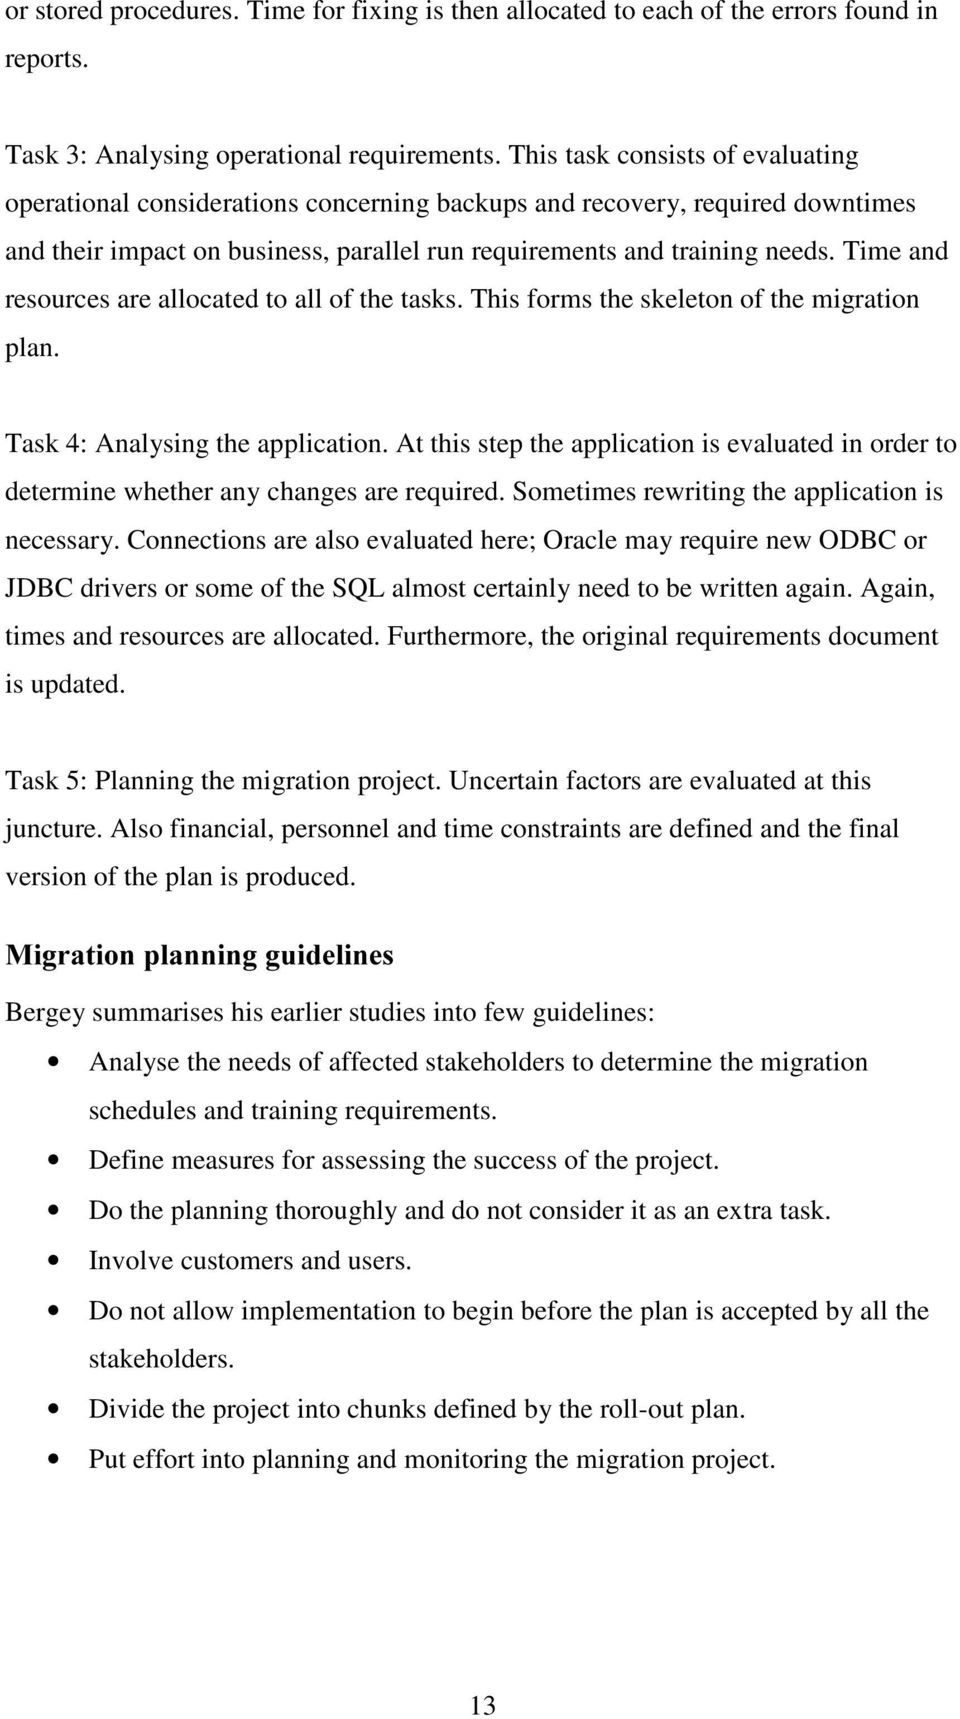 Time and resources are allocated to all of the tasks. This forms the skeleton of the migration plan. Task 4: Analysing the application.